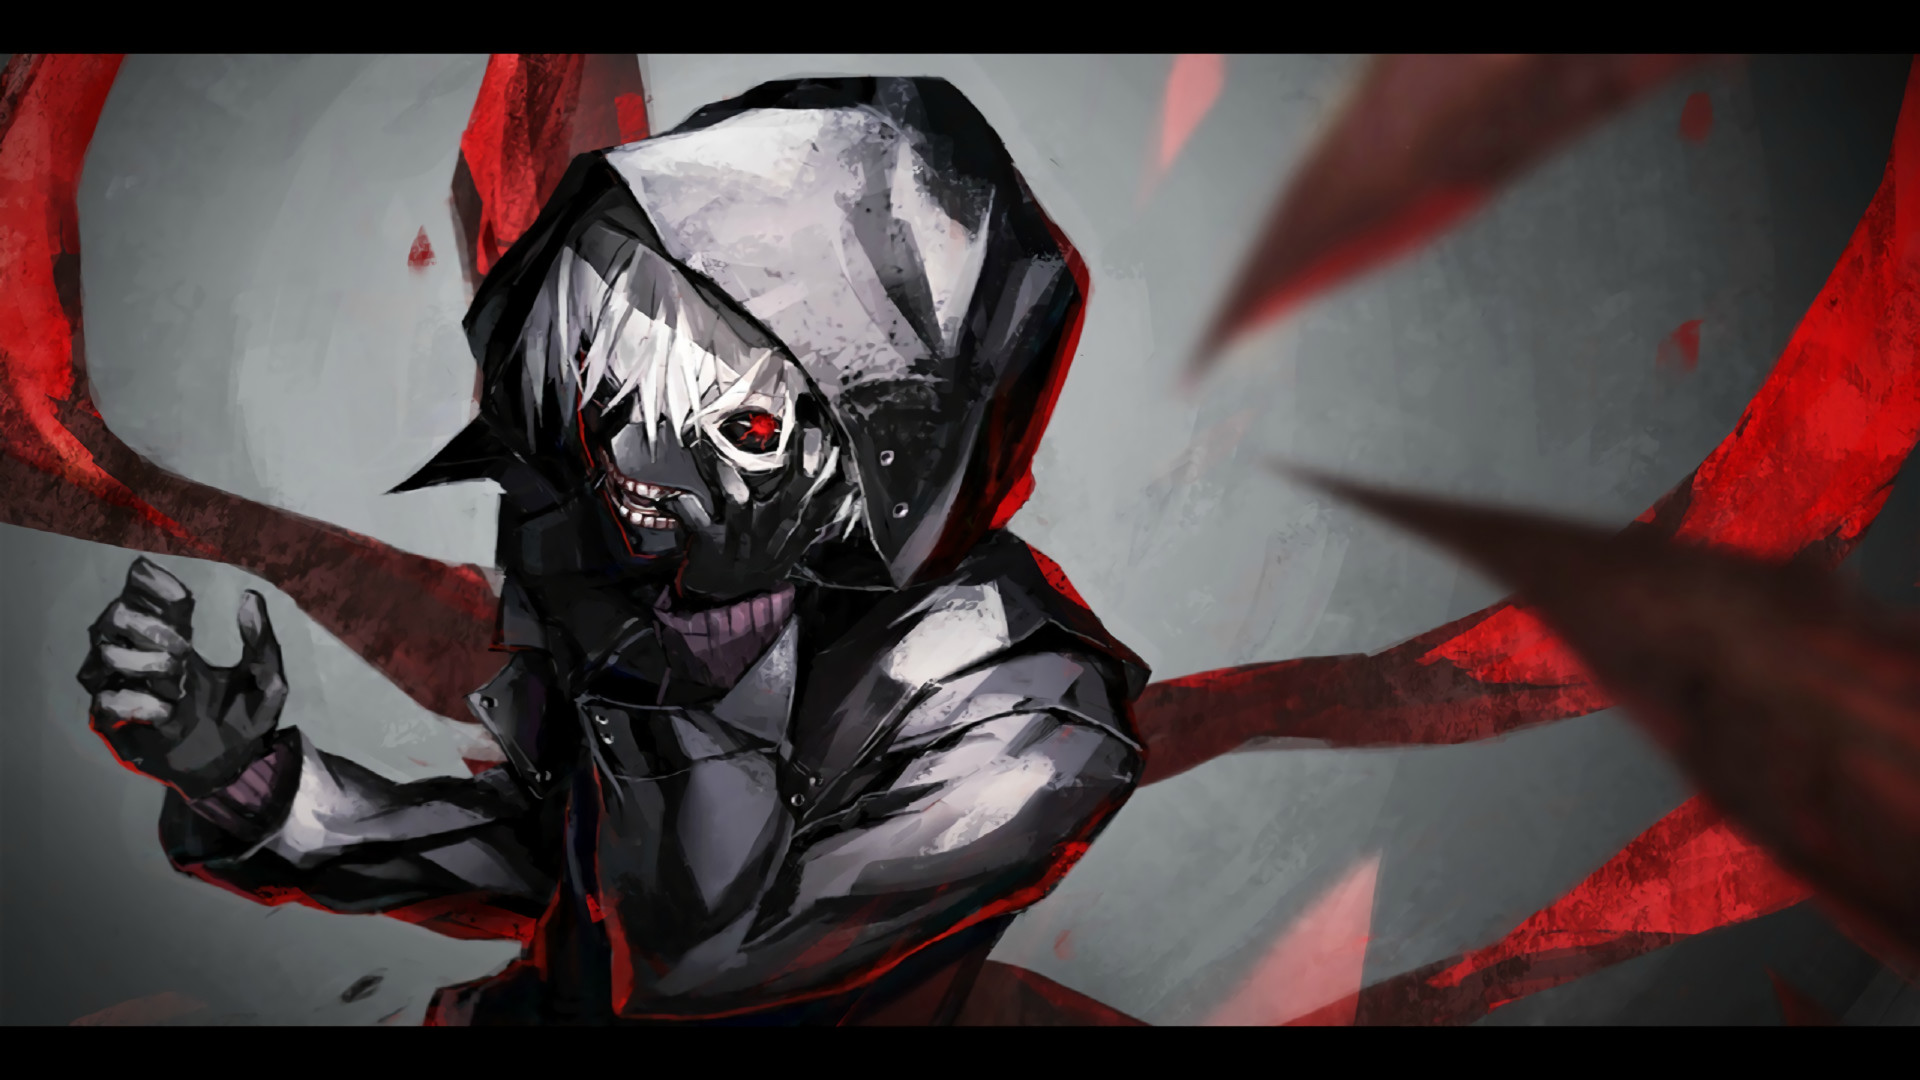 Badass Anime Wallpaper 1920x1080 63 Images